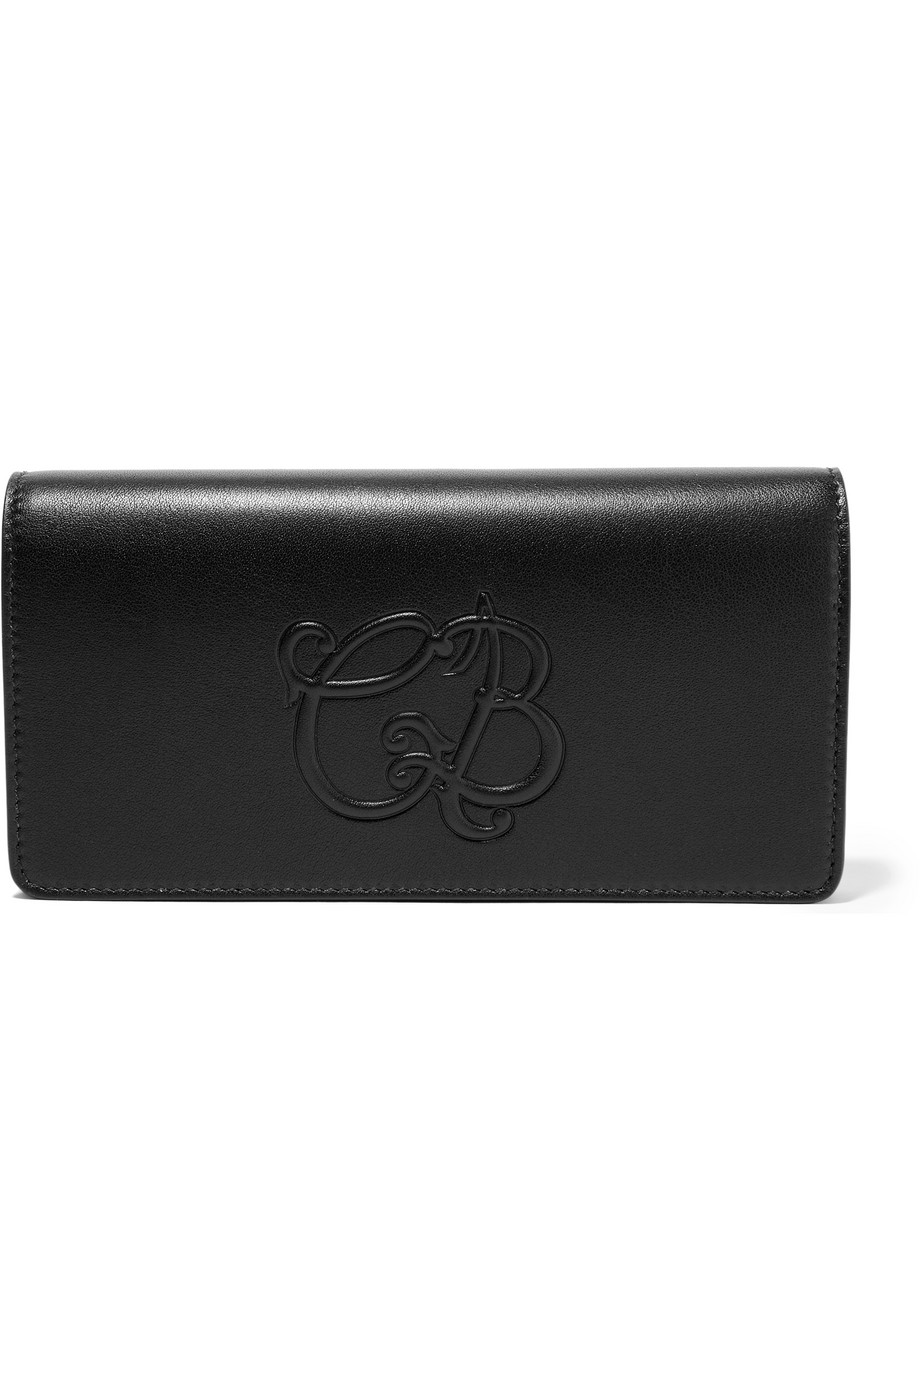 Balenciaga Essential Money Textured-Leather Wallet, Black, Women's